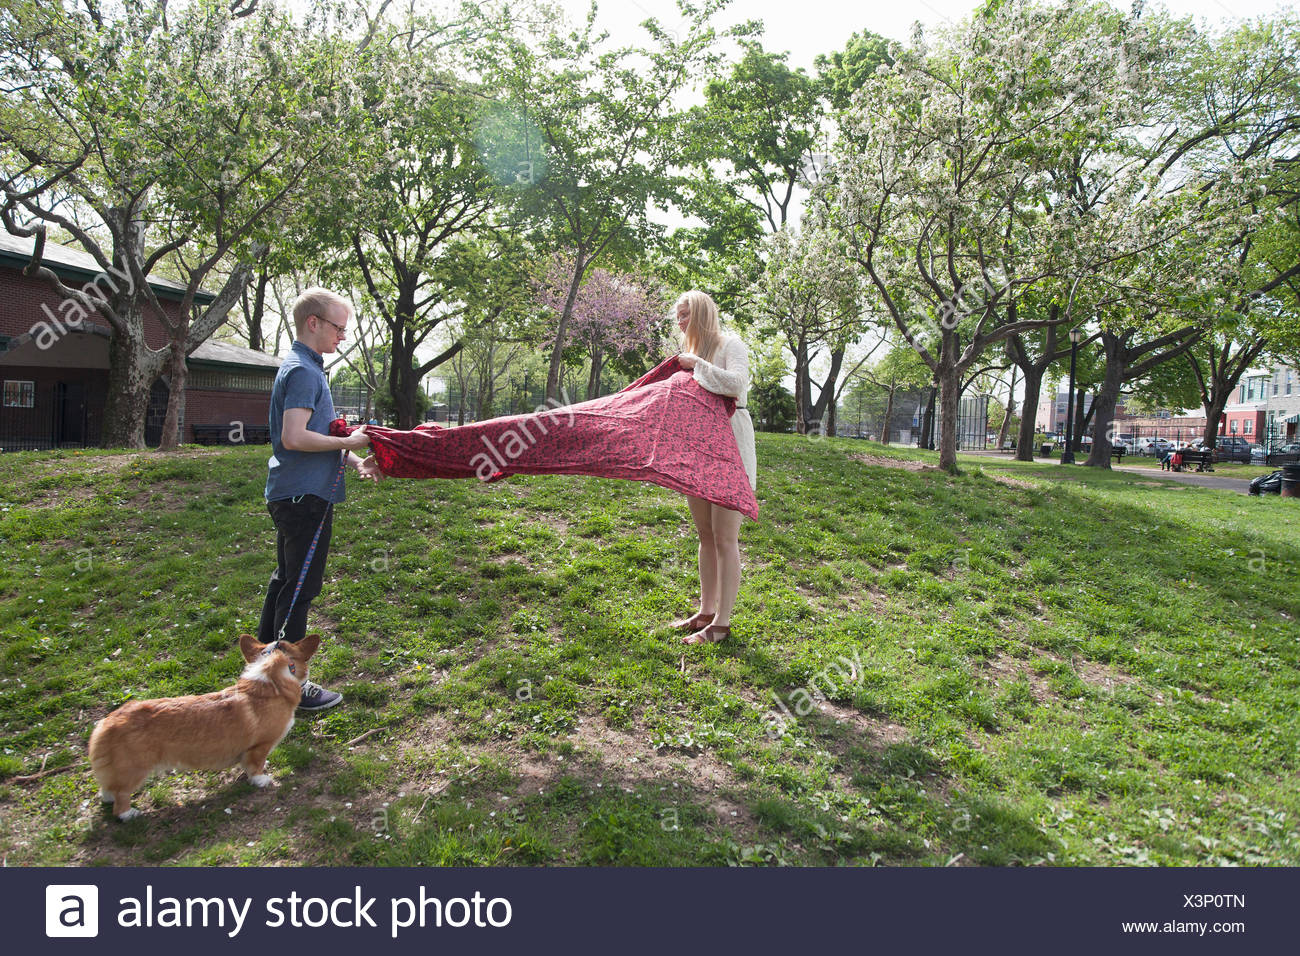 Young couple shaking picnic blanket in park - Stock Image